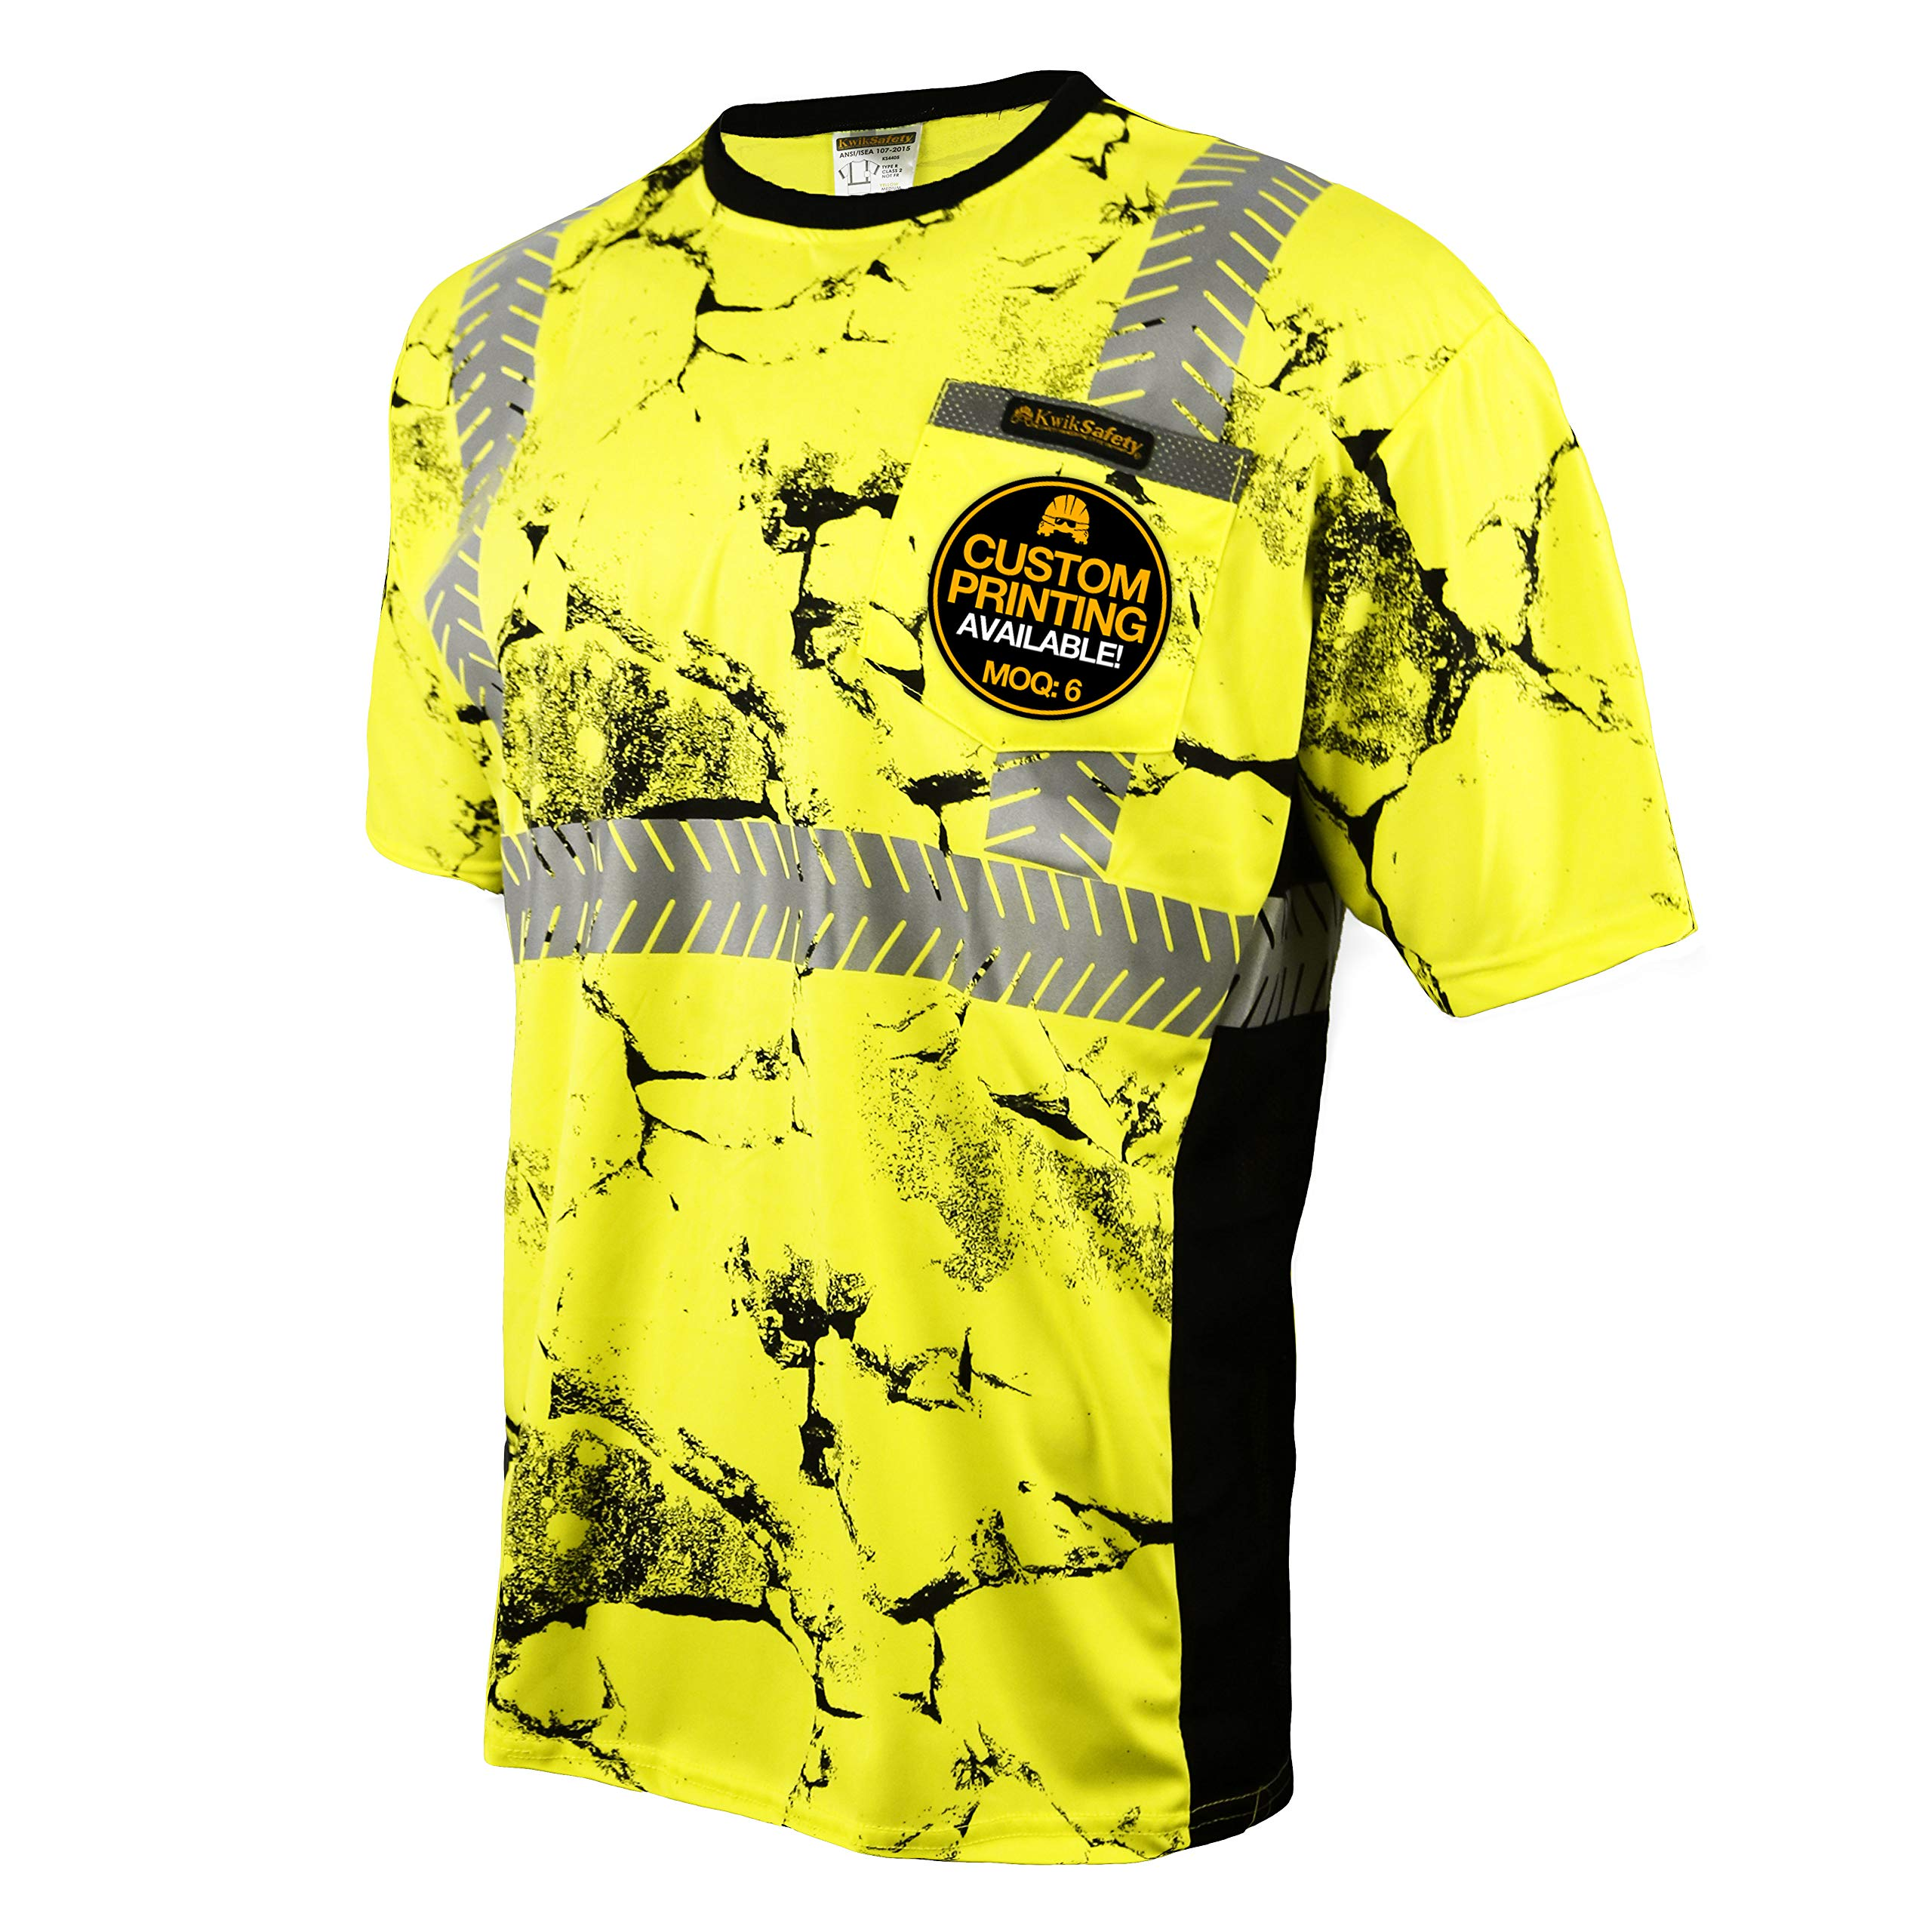 KwikSafety (Charlotte, NC) UNCLE WILLY'S WALL (Chest Pocket) Class 2 ANSI High Visibility Safety Shirt Fishbone Reflective Tape Construction Hi Vis Clothing Men Short Sleeve Camo Yellow Black XX-Large